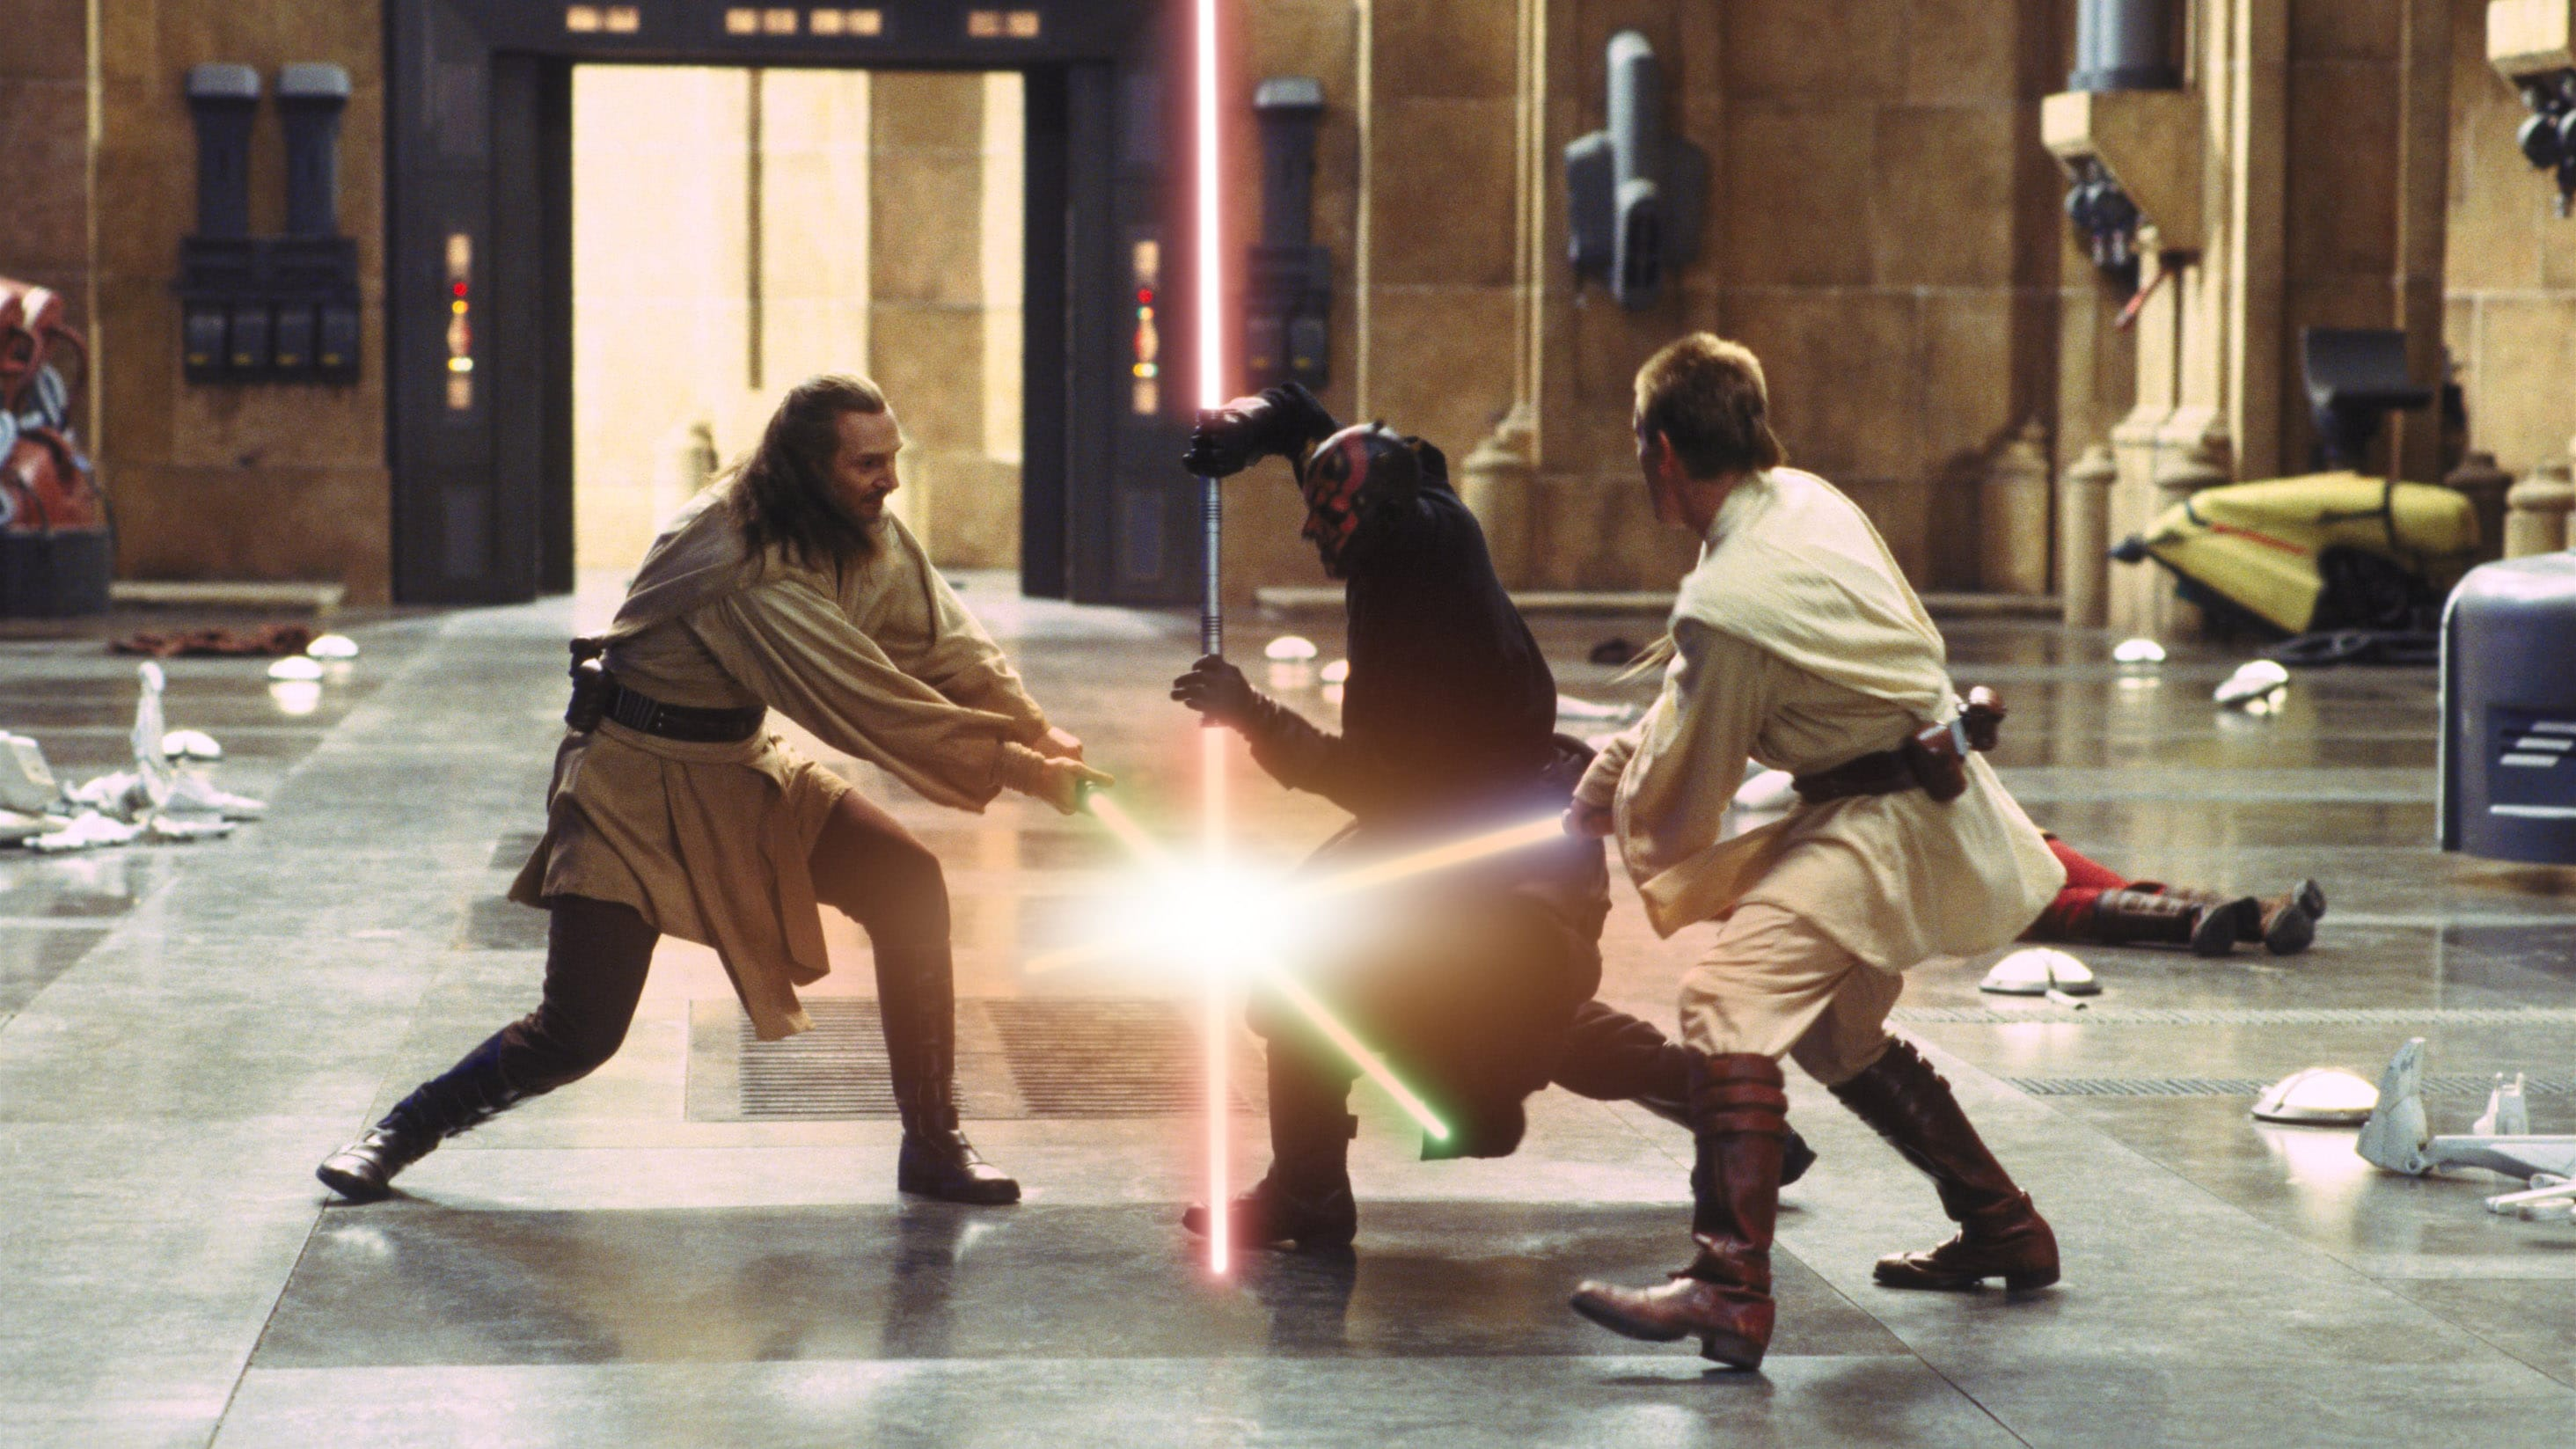 How Star Wars: The Phantom Menace's Epic Lightsaber Duel Is Central to Prequel Trilogy's Themes